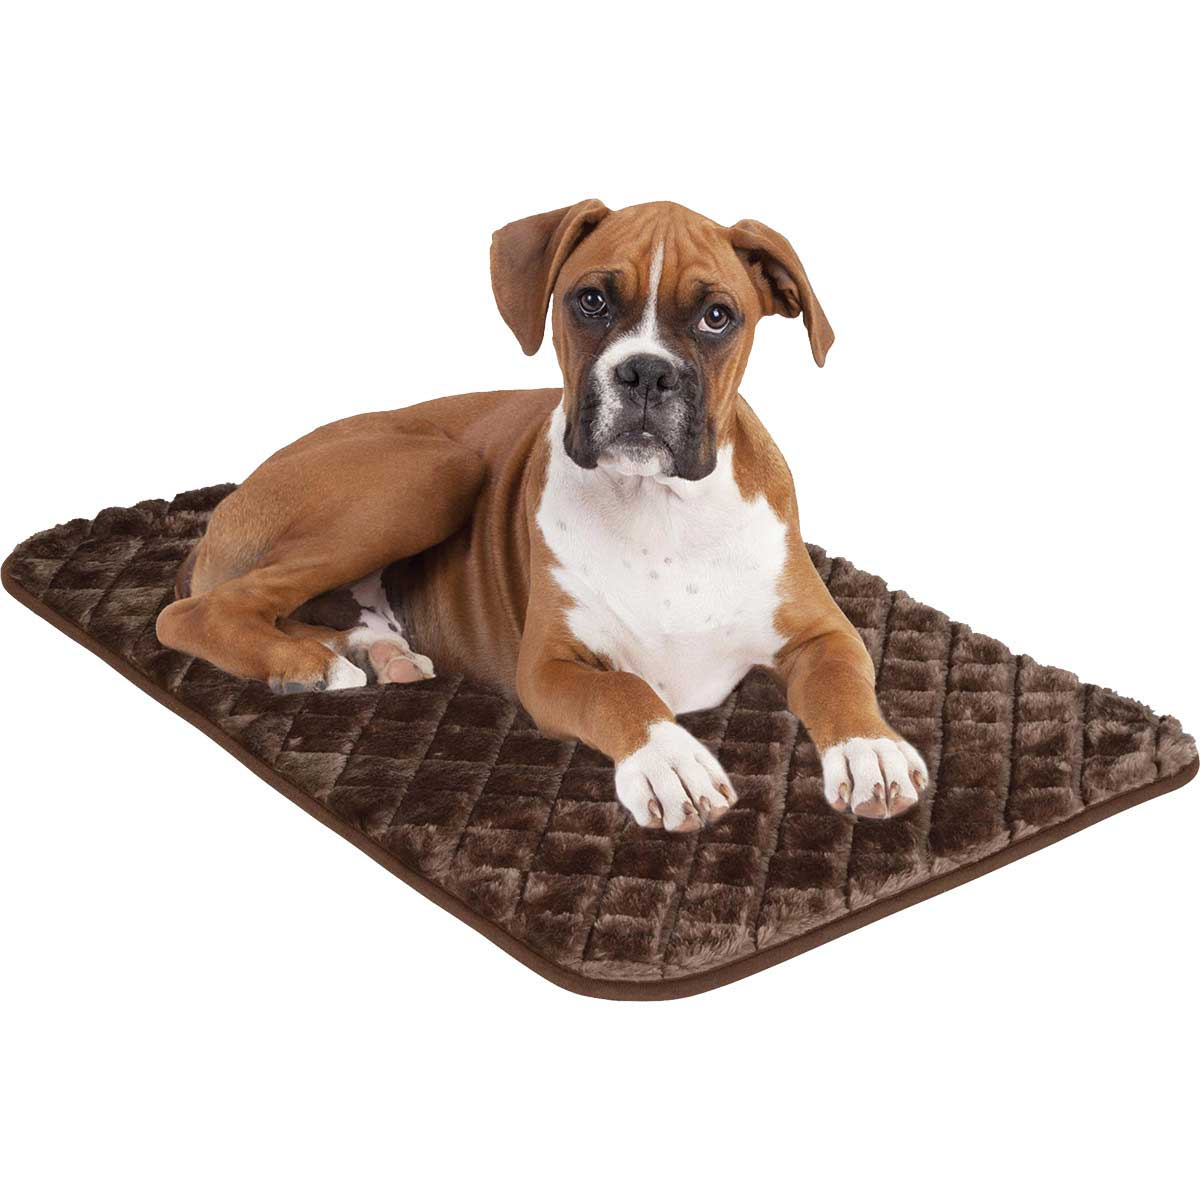 Snoozzy Sleeper Chocolate Brown Pet Mat for Medium Dogs - 43 inches by 28 inches